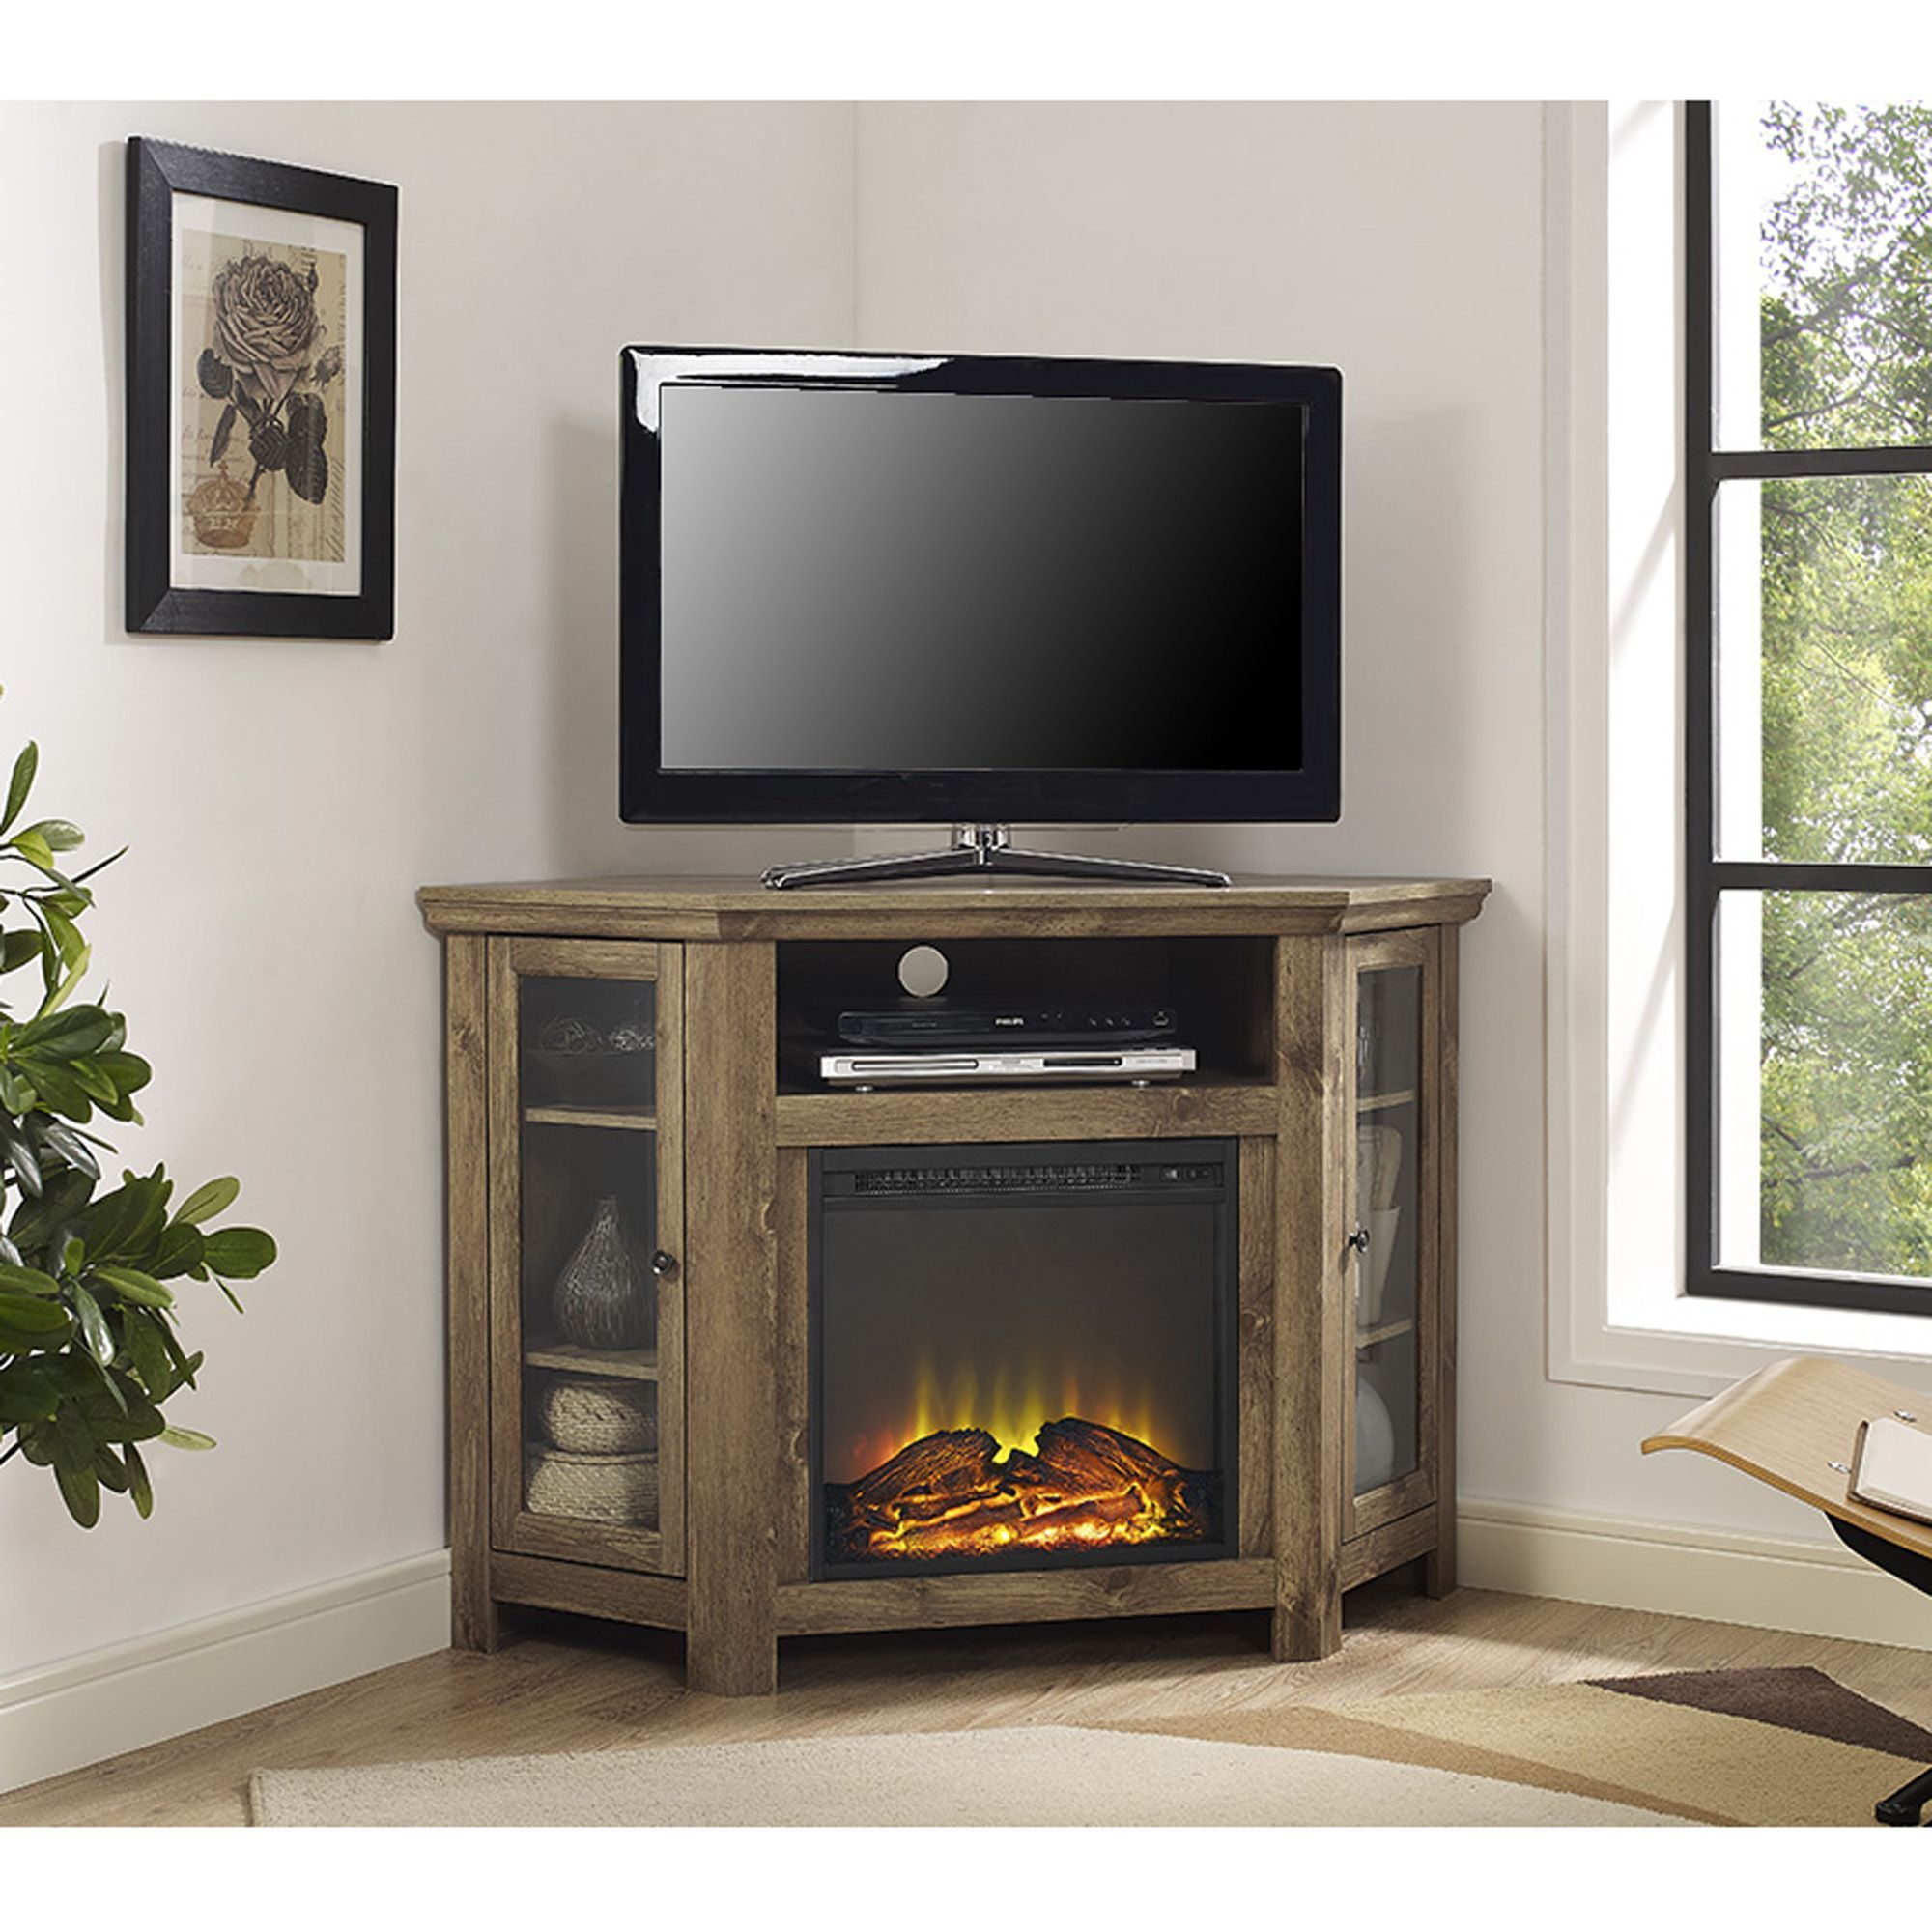 Fireplace tv stand and Corner space